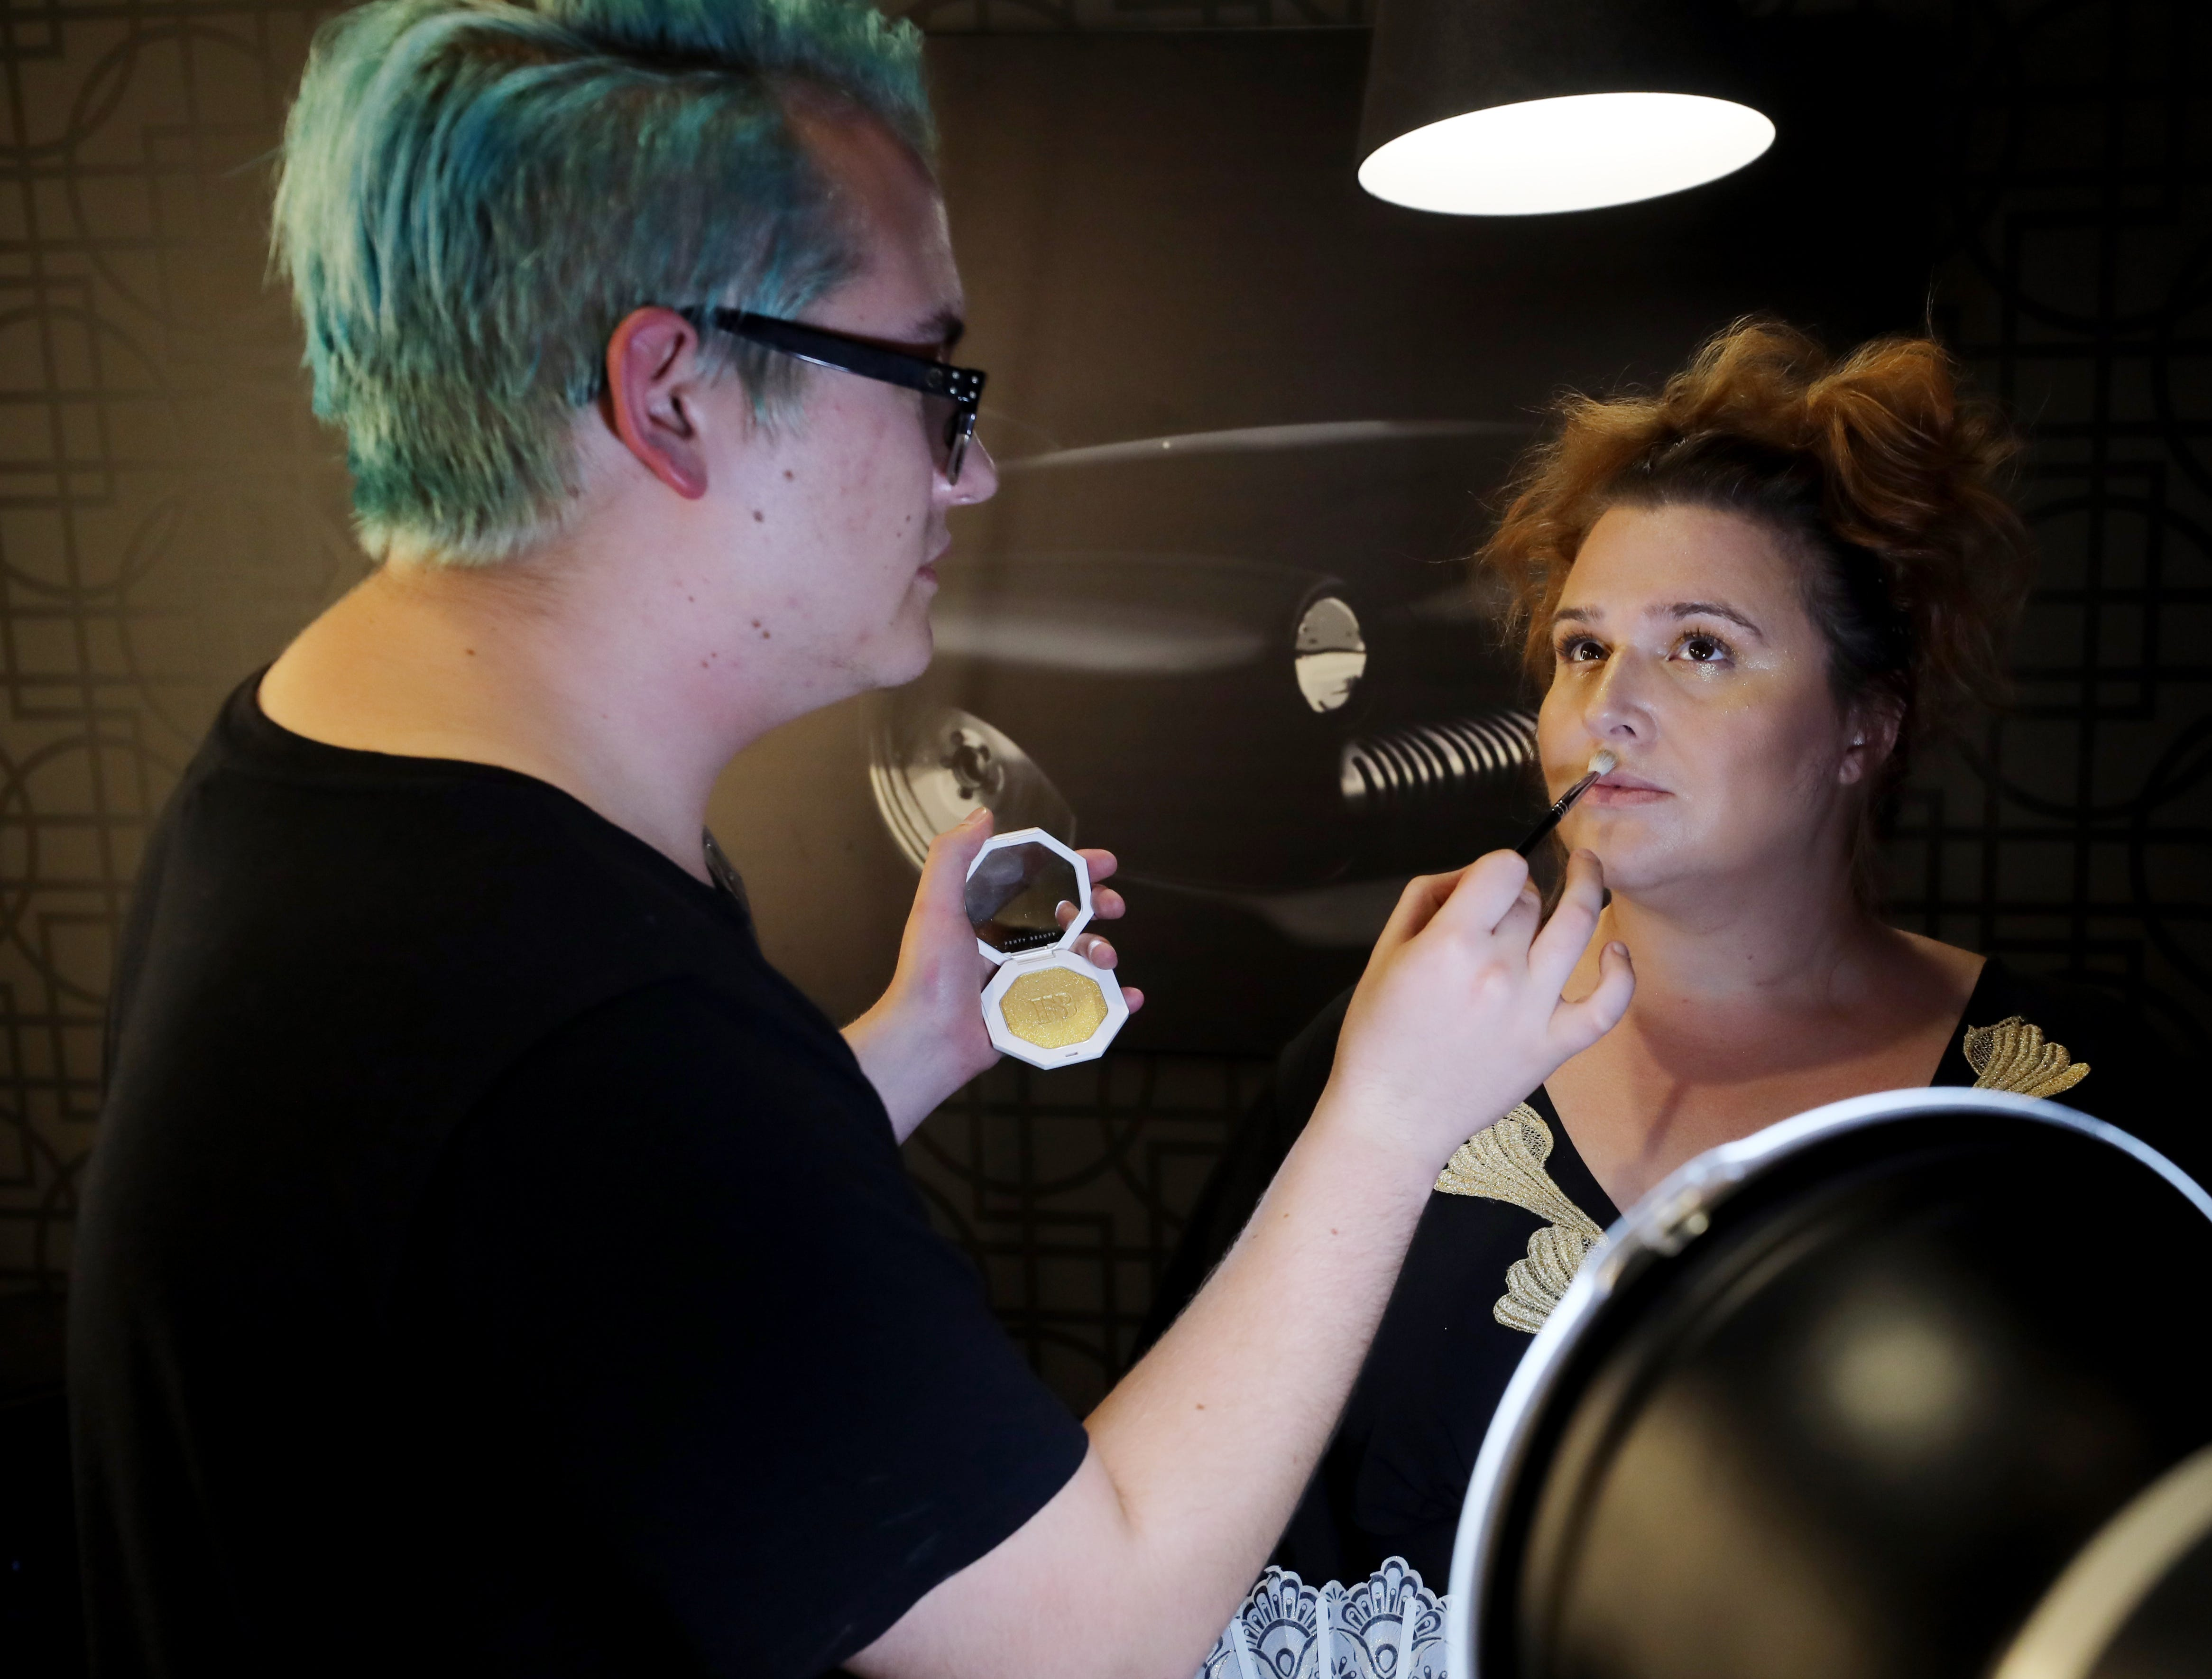 Gunnar Lundblad, left, applies makeup for Heidi Oechsel before the start of the Boundless 2018 fashion show held at Studio 615 on Saturday September 8, 2018.